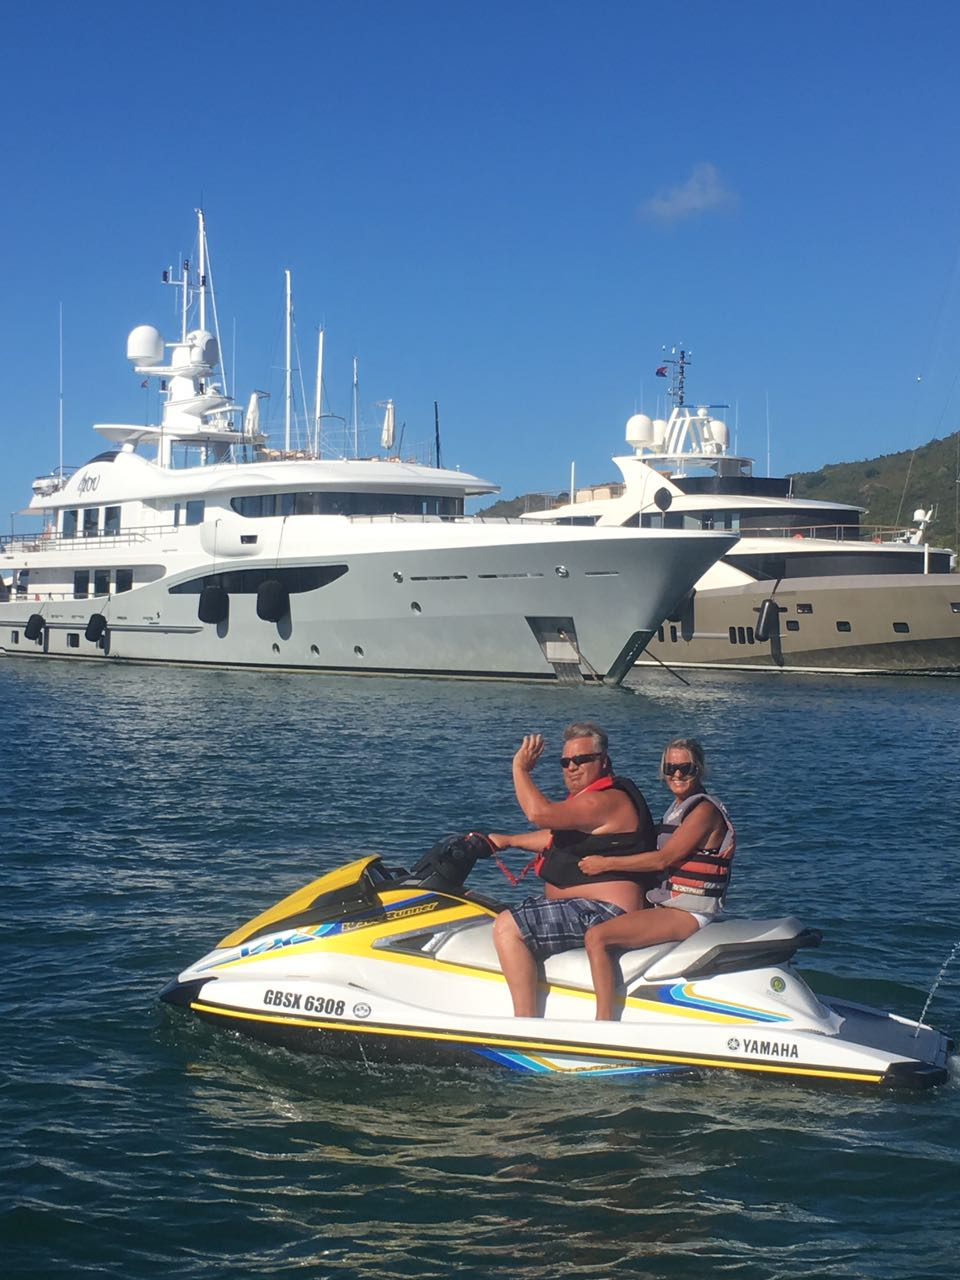 Experience a thrilling ride on a jet-ski in Saint Martin